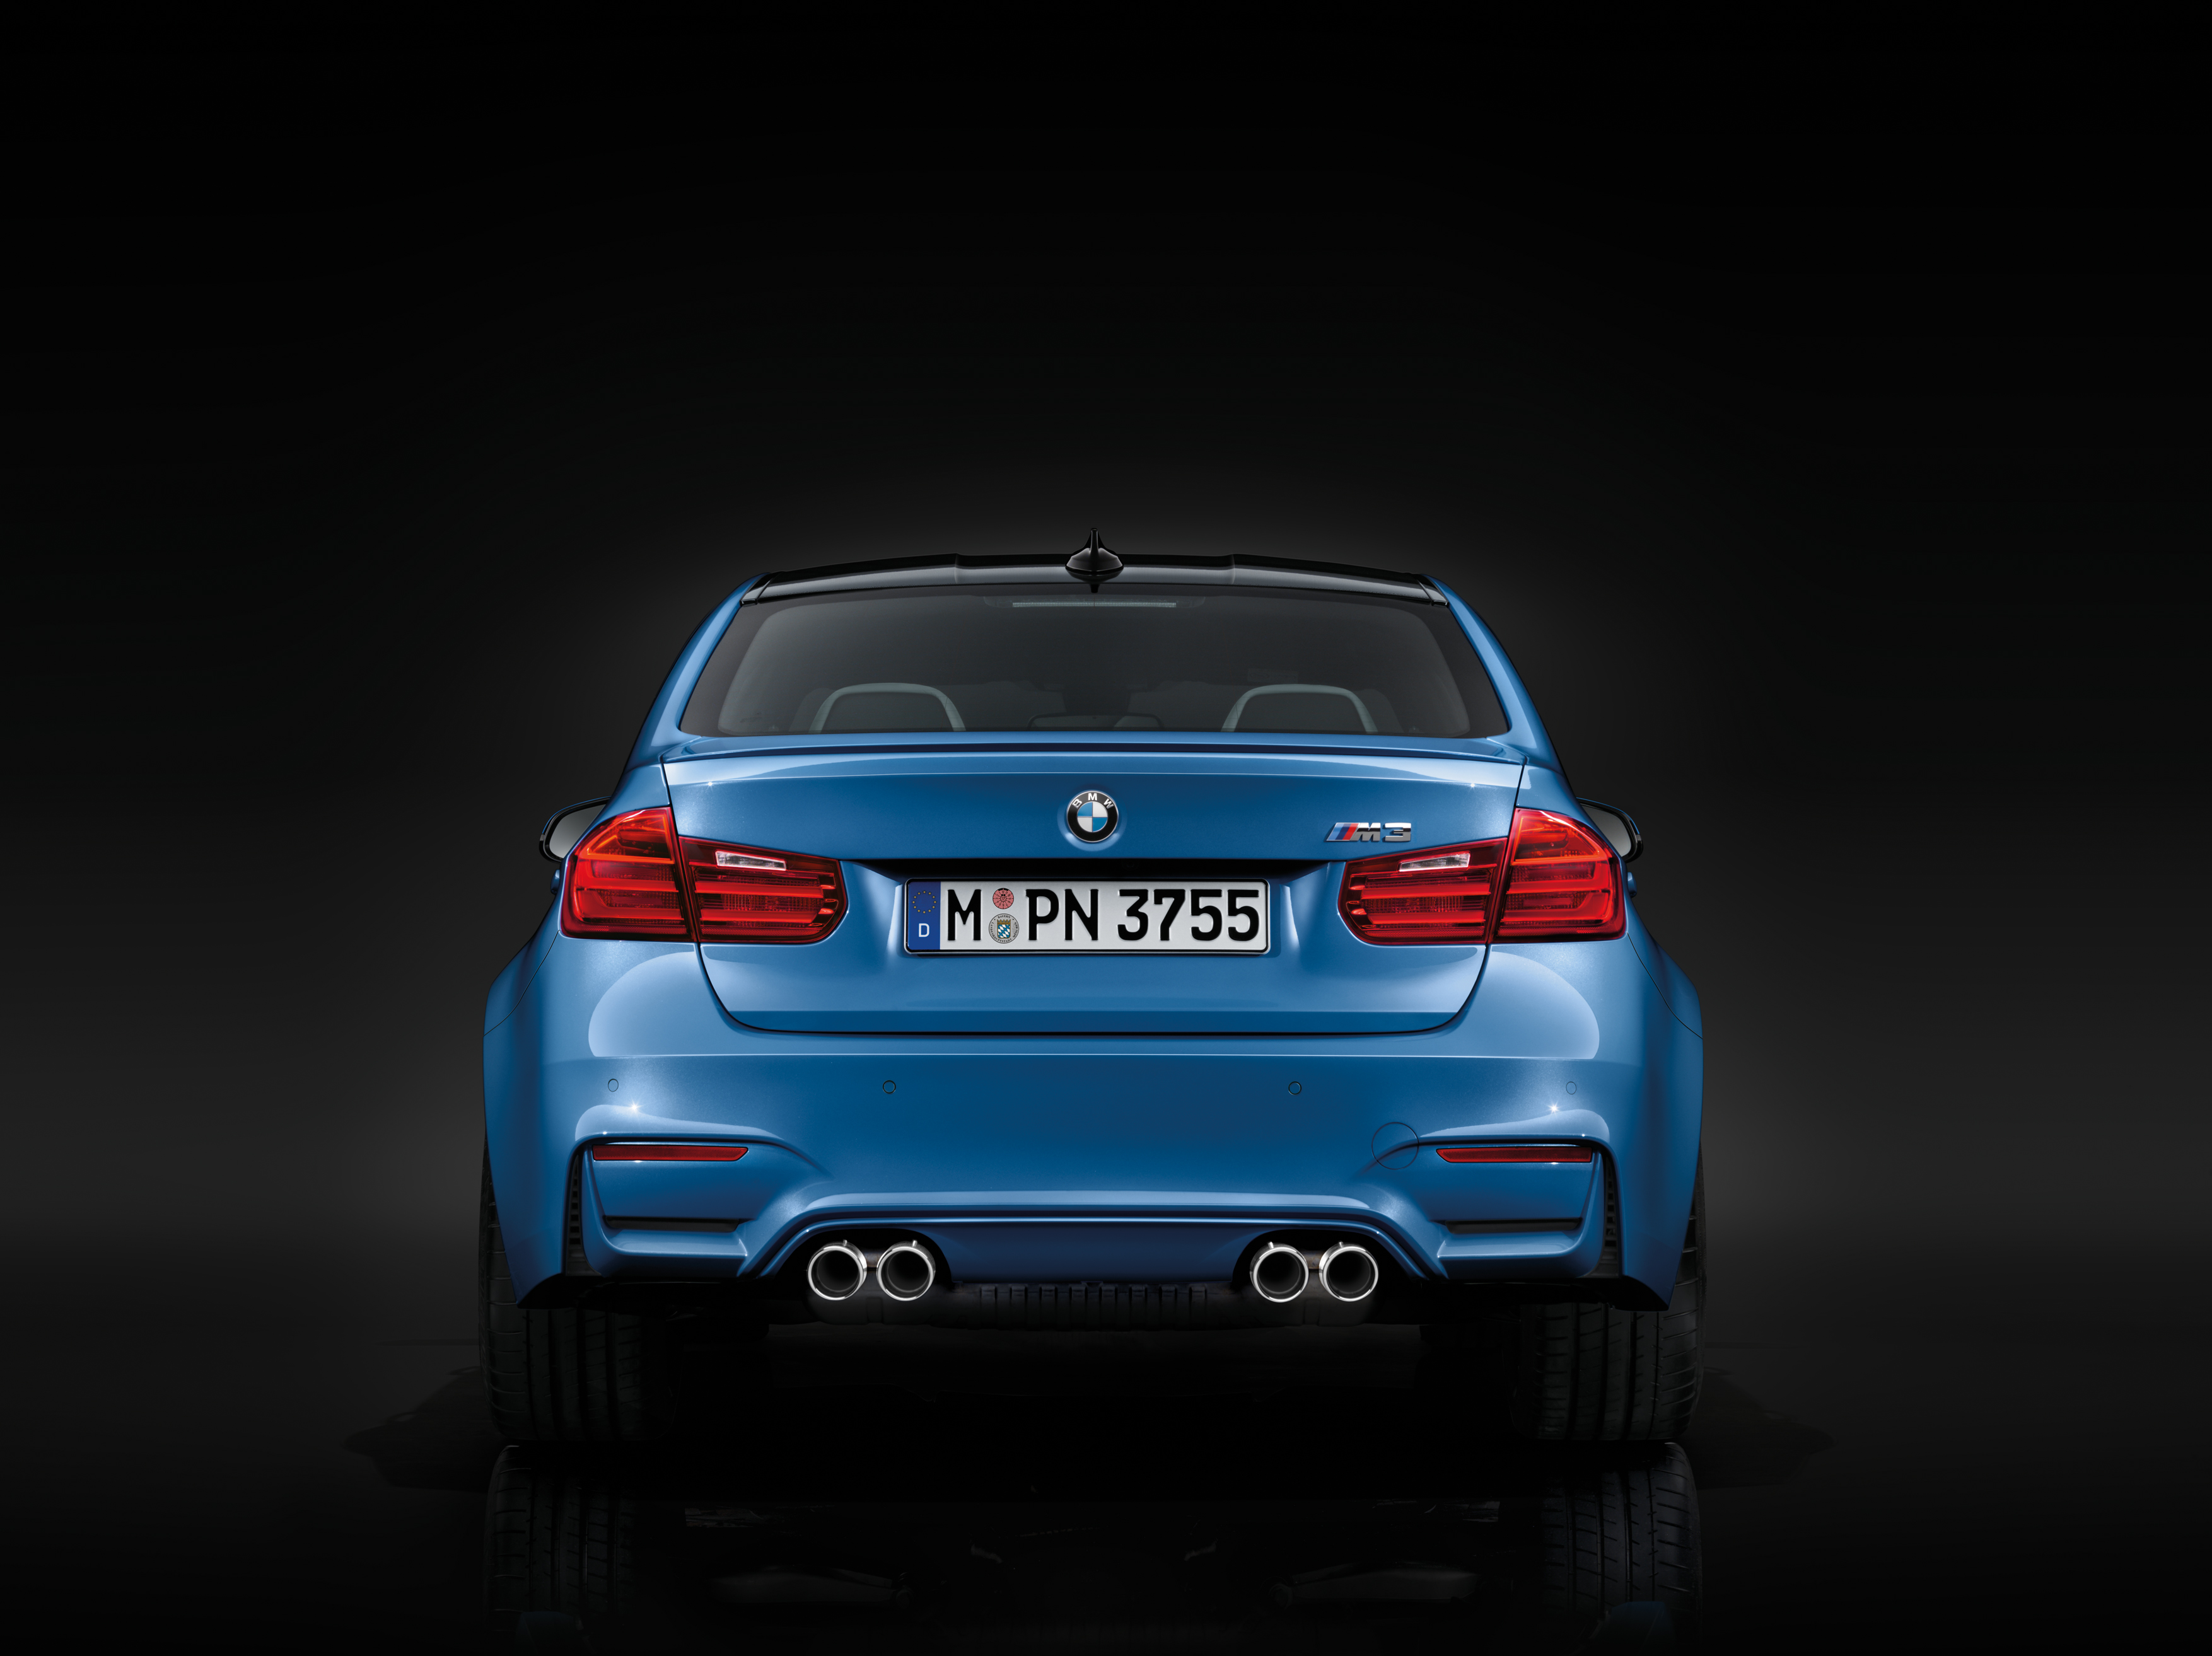 2015 BMW M3 Sedan Stills - (3) - SMADEMEDIA.COM Galleria